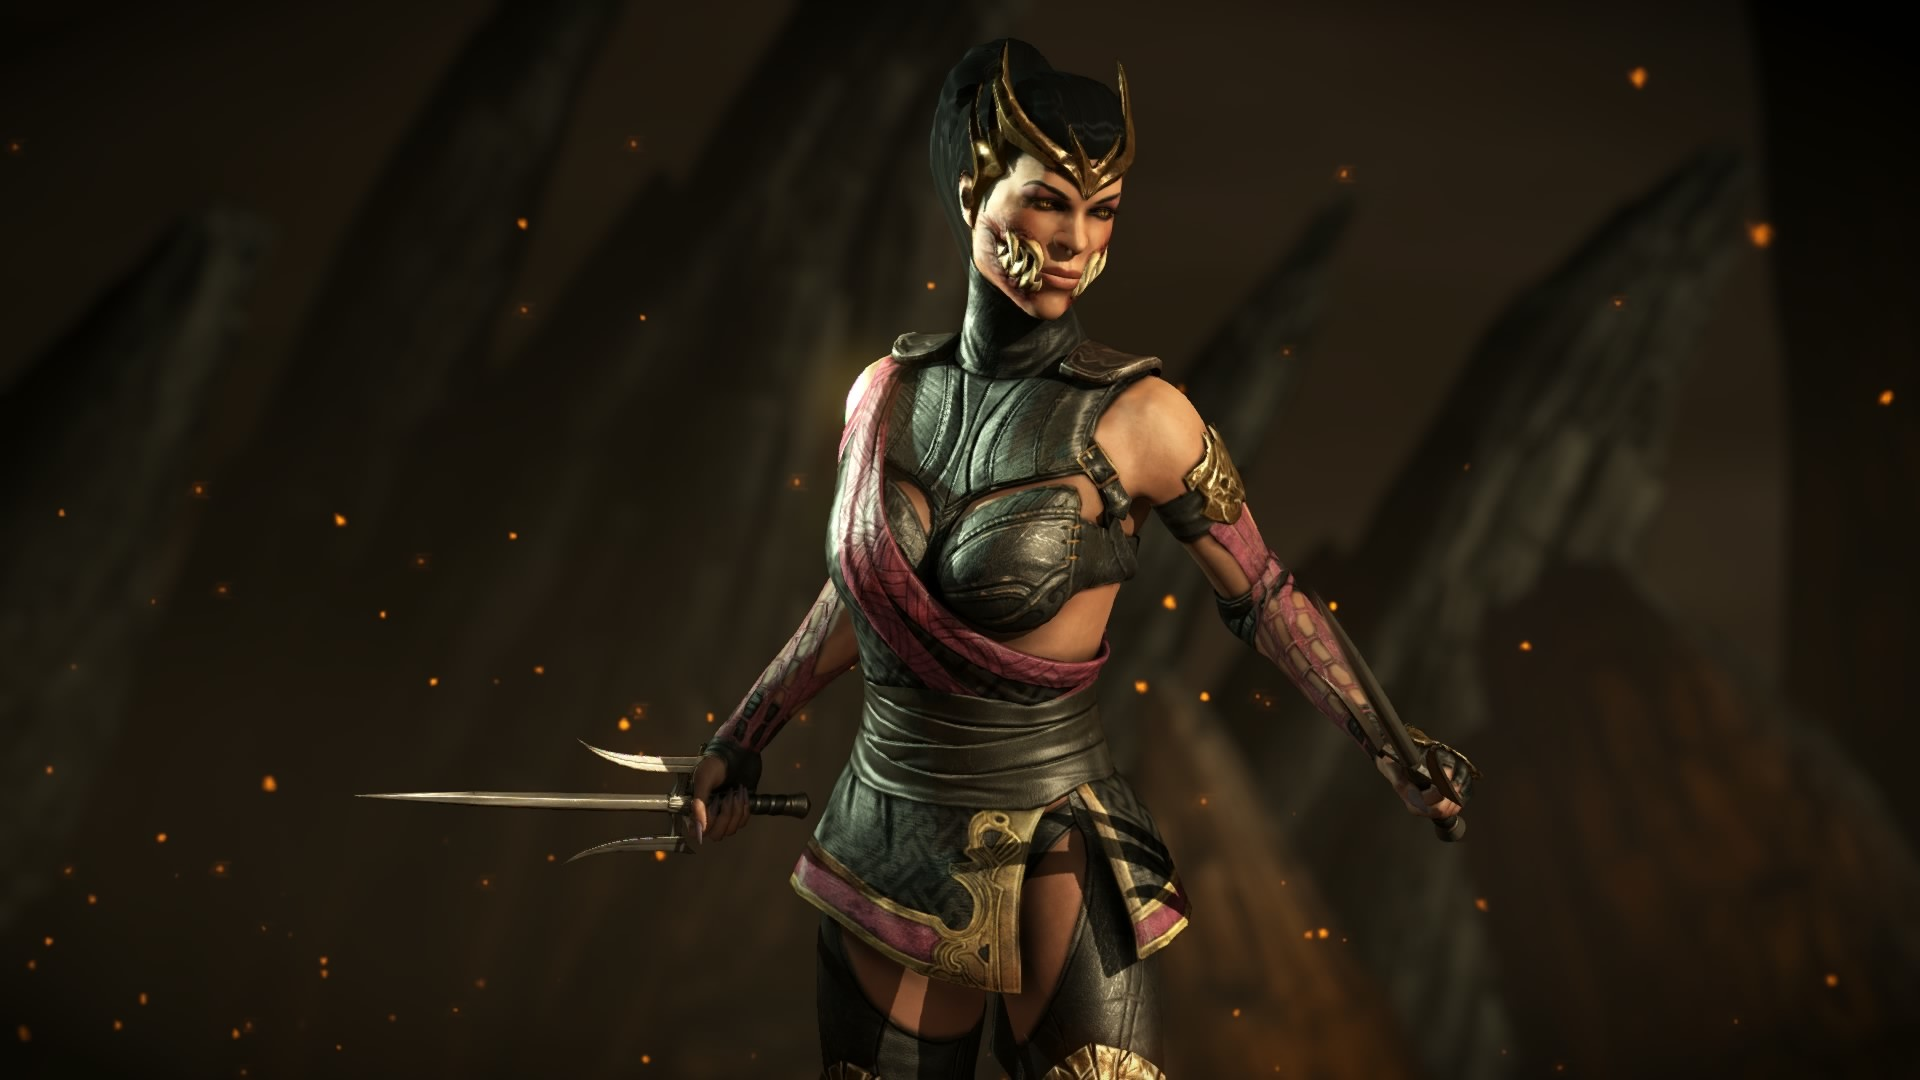 Mortal Kombat X Kitana Wallpaper (77+ images)